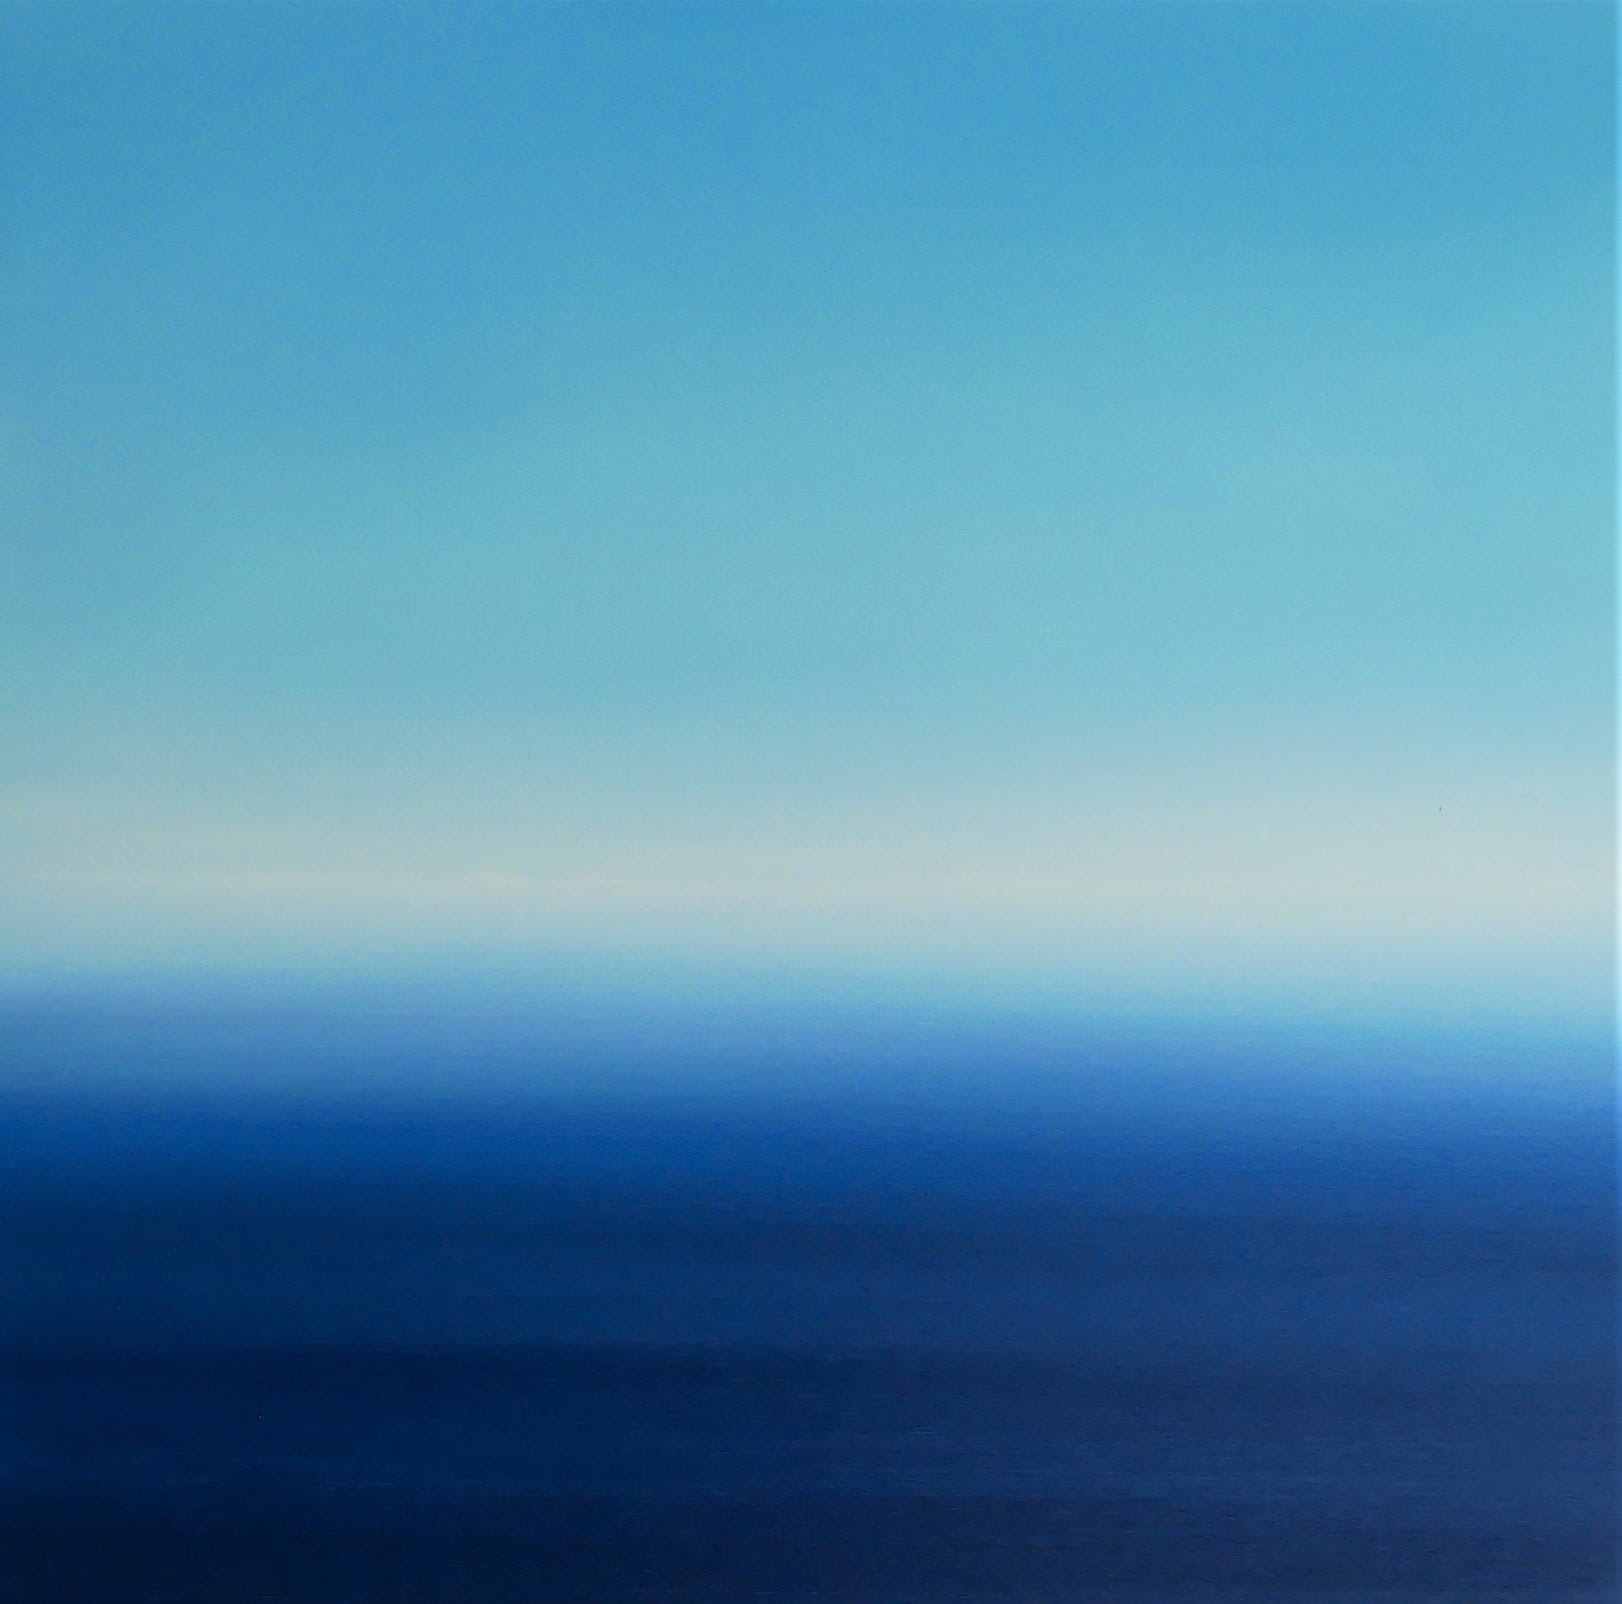 """<span class=""""link fancybox-details-link""""><a href=""""/artists/78-martyn-perryman/works/7827-martyn-perryman-morning-harmony-st-ives-bay-2-2021/"""">View Detail Page</a></span><div class=""""artist""""><strong>Martyn Perryman</strong></div> b. 1963 <div class=""""title""""><em>Morning Harmony St Ives Bay 2</em>, 2021</div> <div class=""""medium"""">oil on canvas<br /> framed<br /> </div> <div class=""""dimensions"""">canvas: h. 60 x w. 60 cm <br /> frame: h. 75 cm x w. 75 cm</div><div class=""""copyright_line"""">Ownart: £95 x 10 Months, 0% APR</div>"""